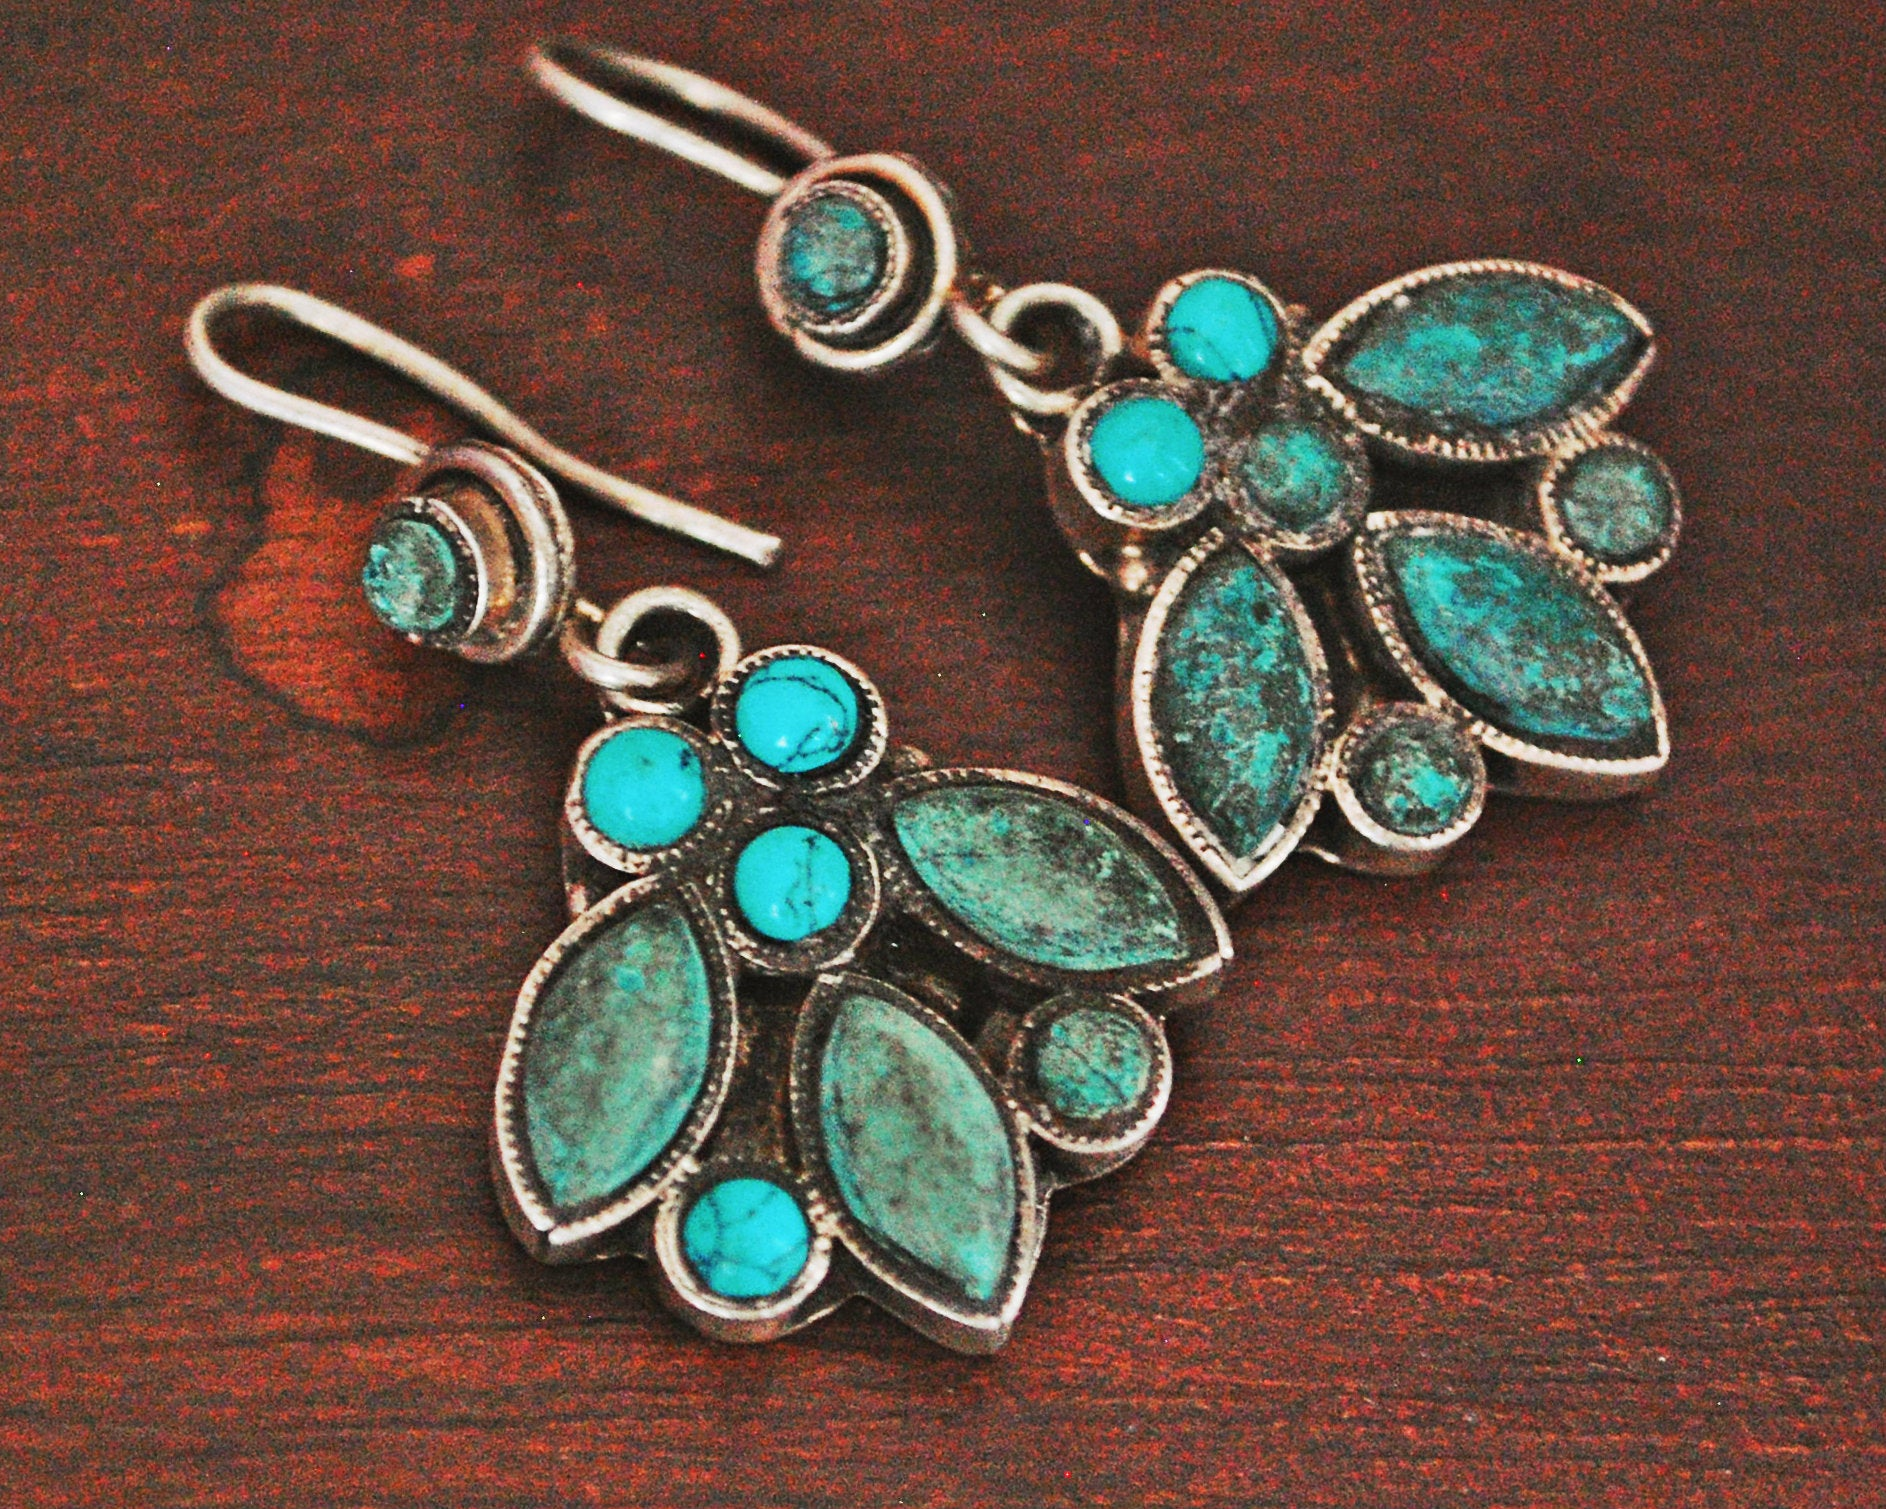 Turquoise Earrings from India